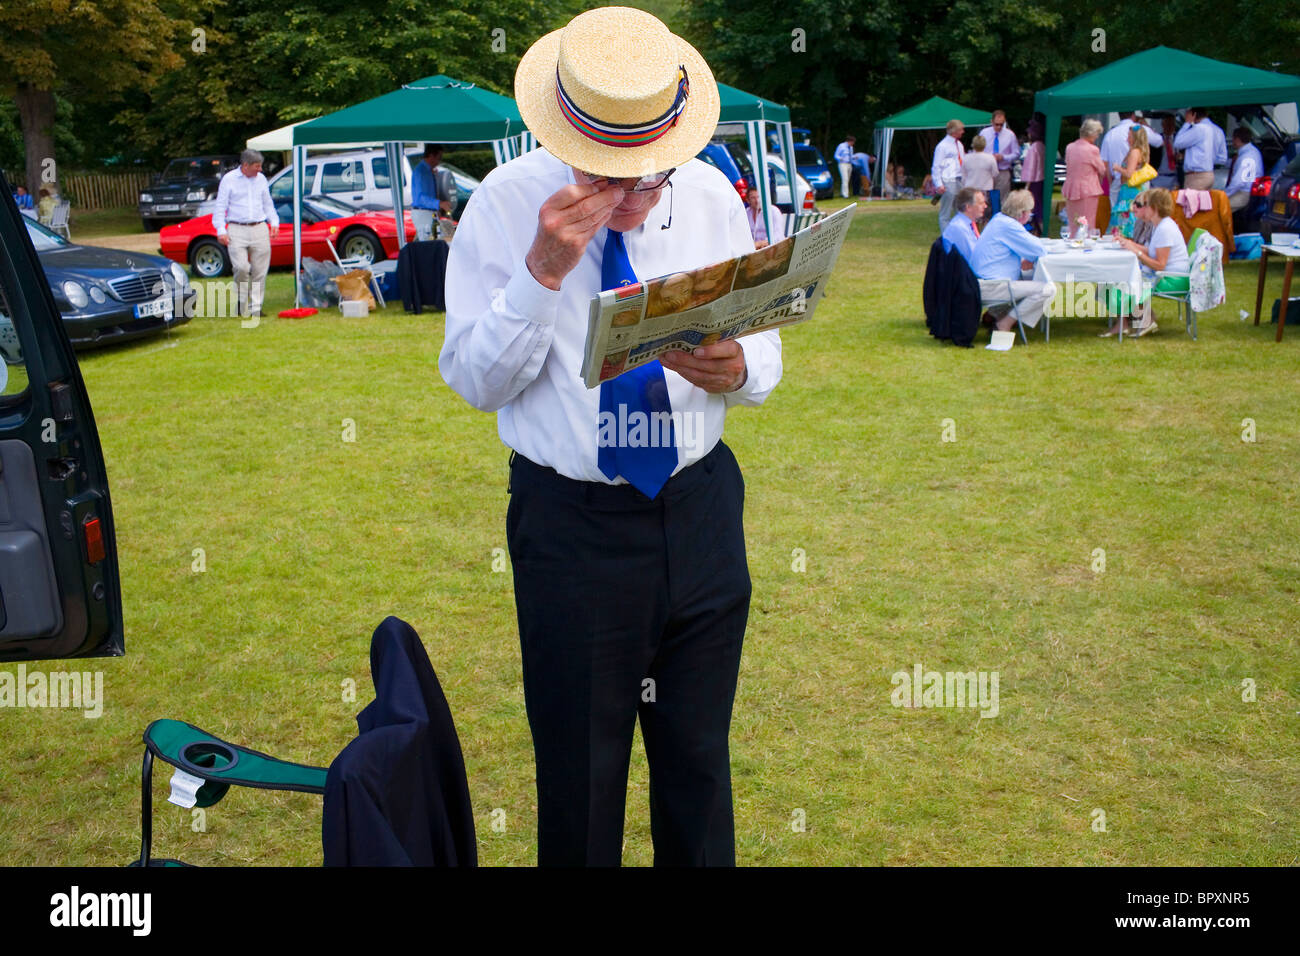 An old man in a straw boater reads the Daily Telegraph newspaper through a pair of glasses. - Stock Image